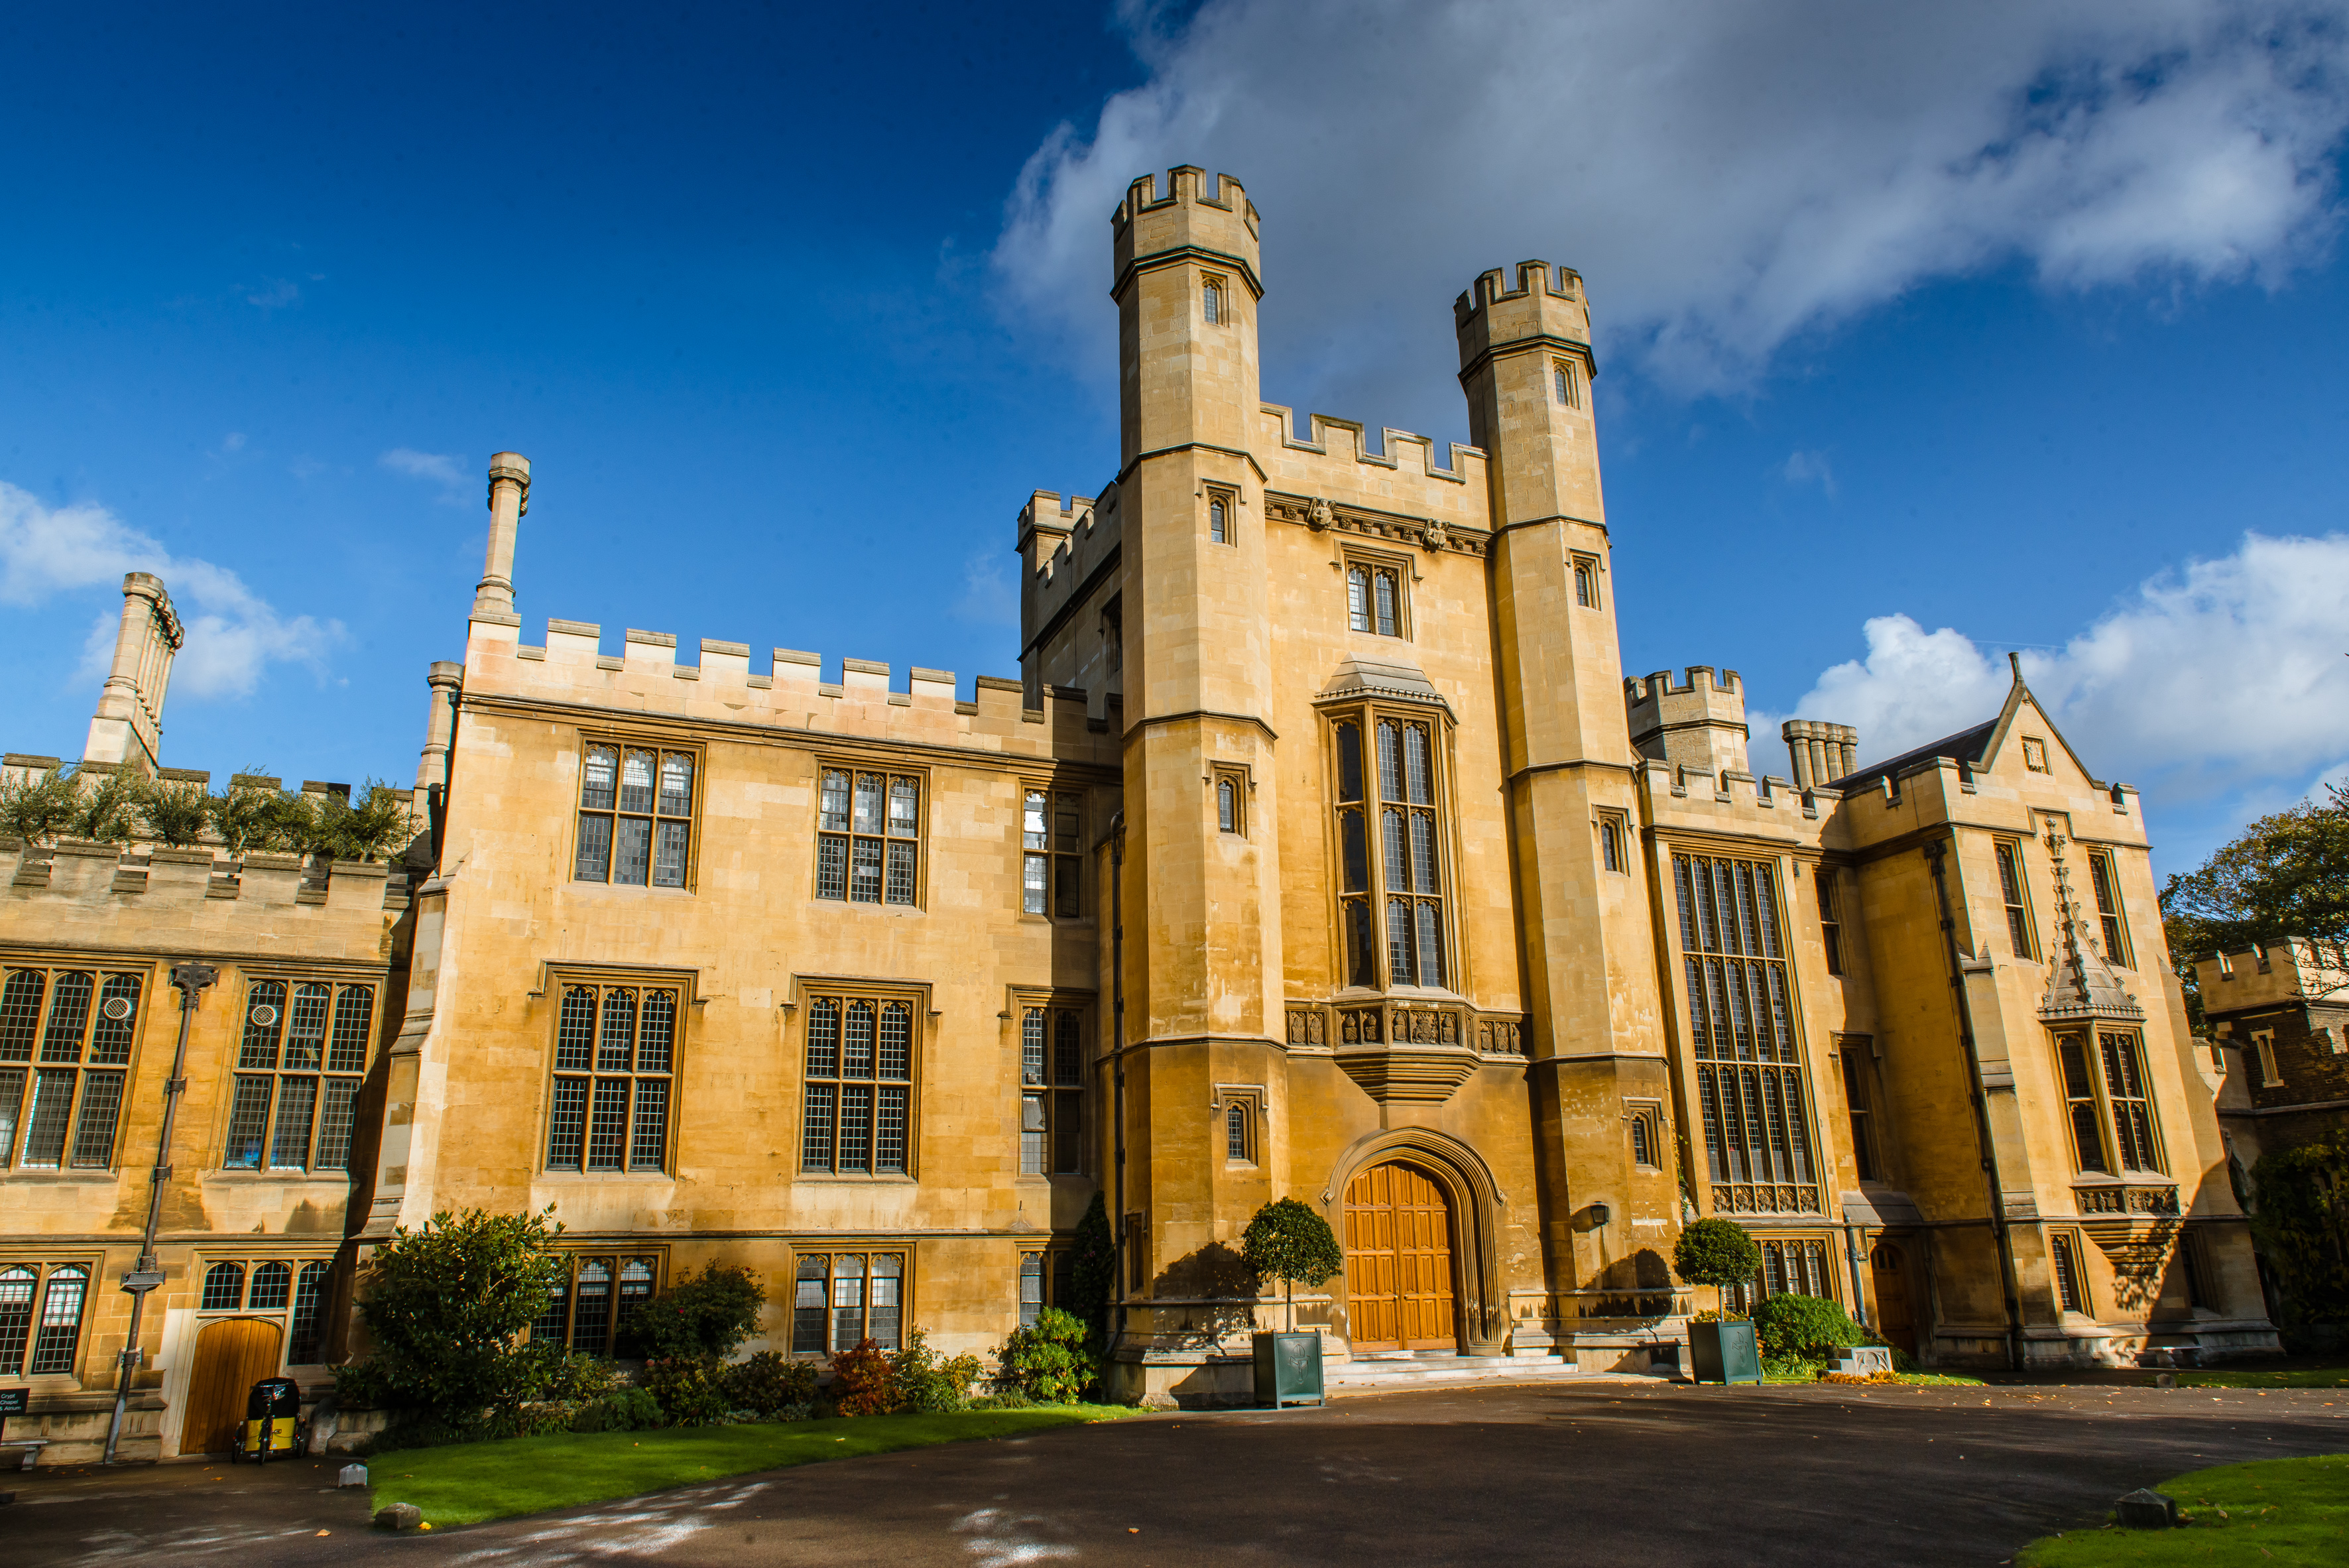 About Lambeth Palace | The Archbishop of Canterbury